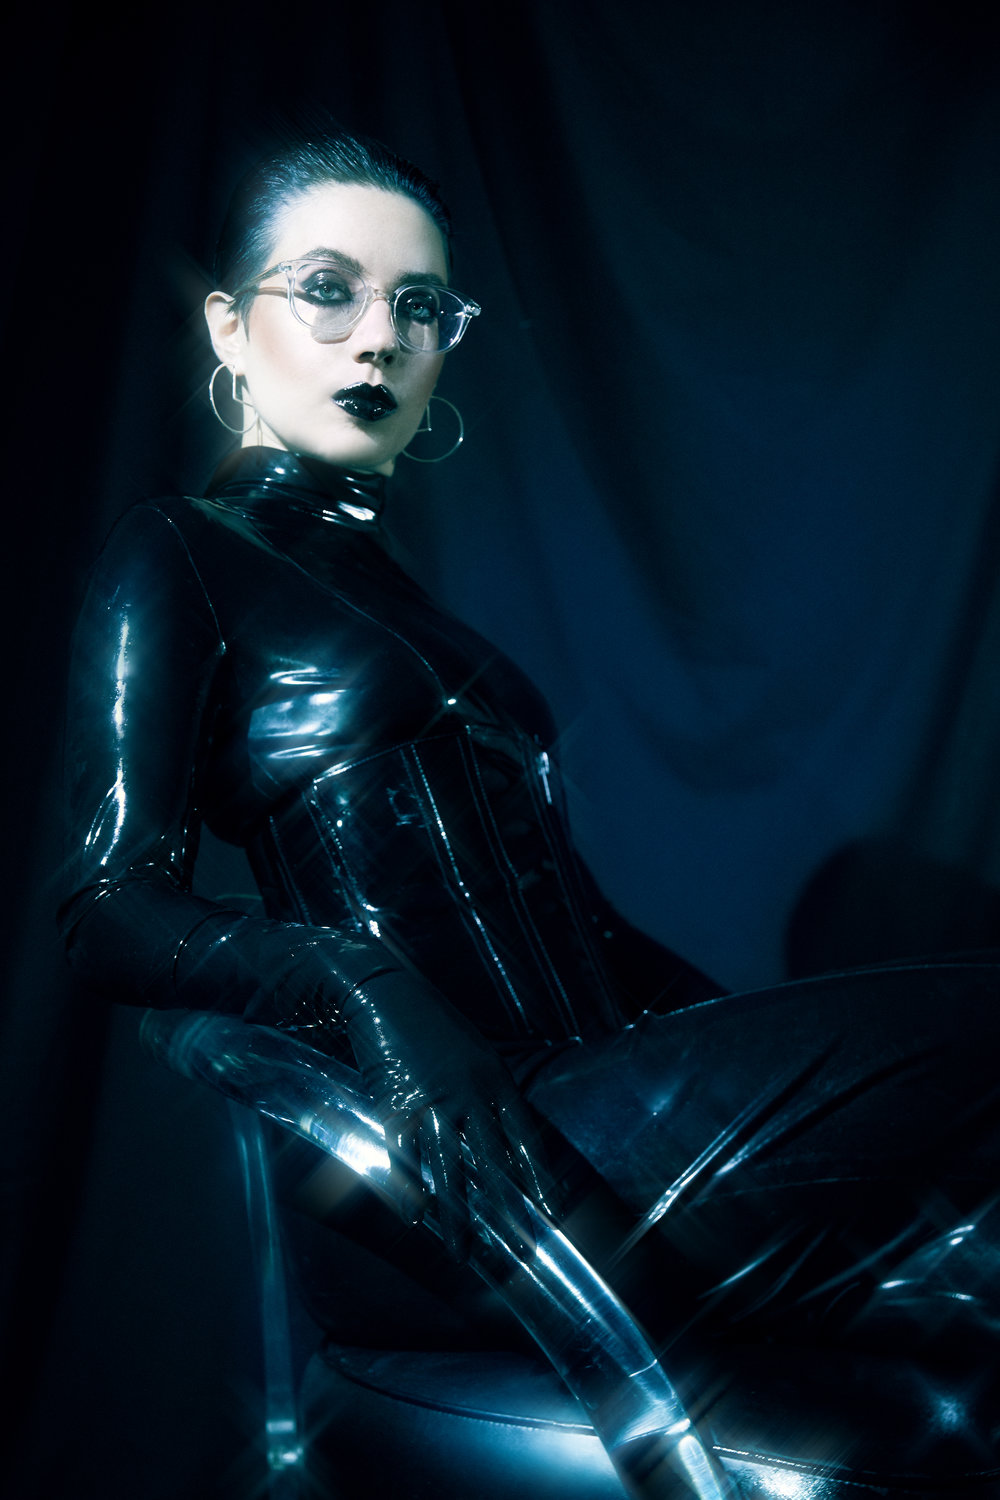 nyc-dominatrix-mistrix-sade-prodomme-latex-mistress-bdsm-lanee-bird.jpg